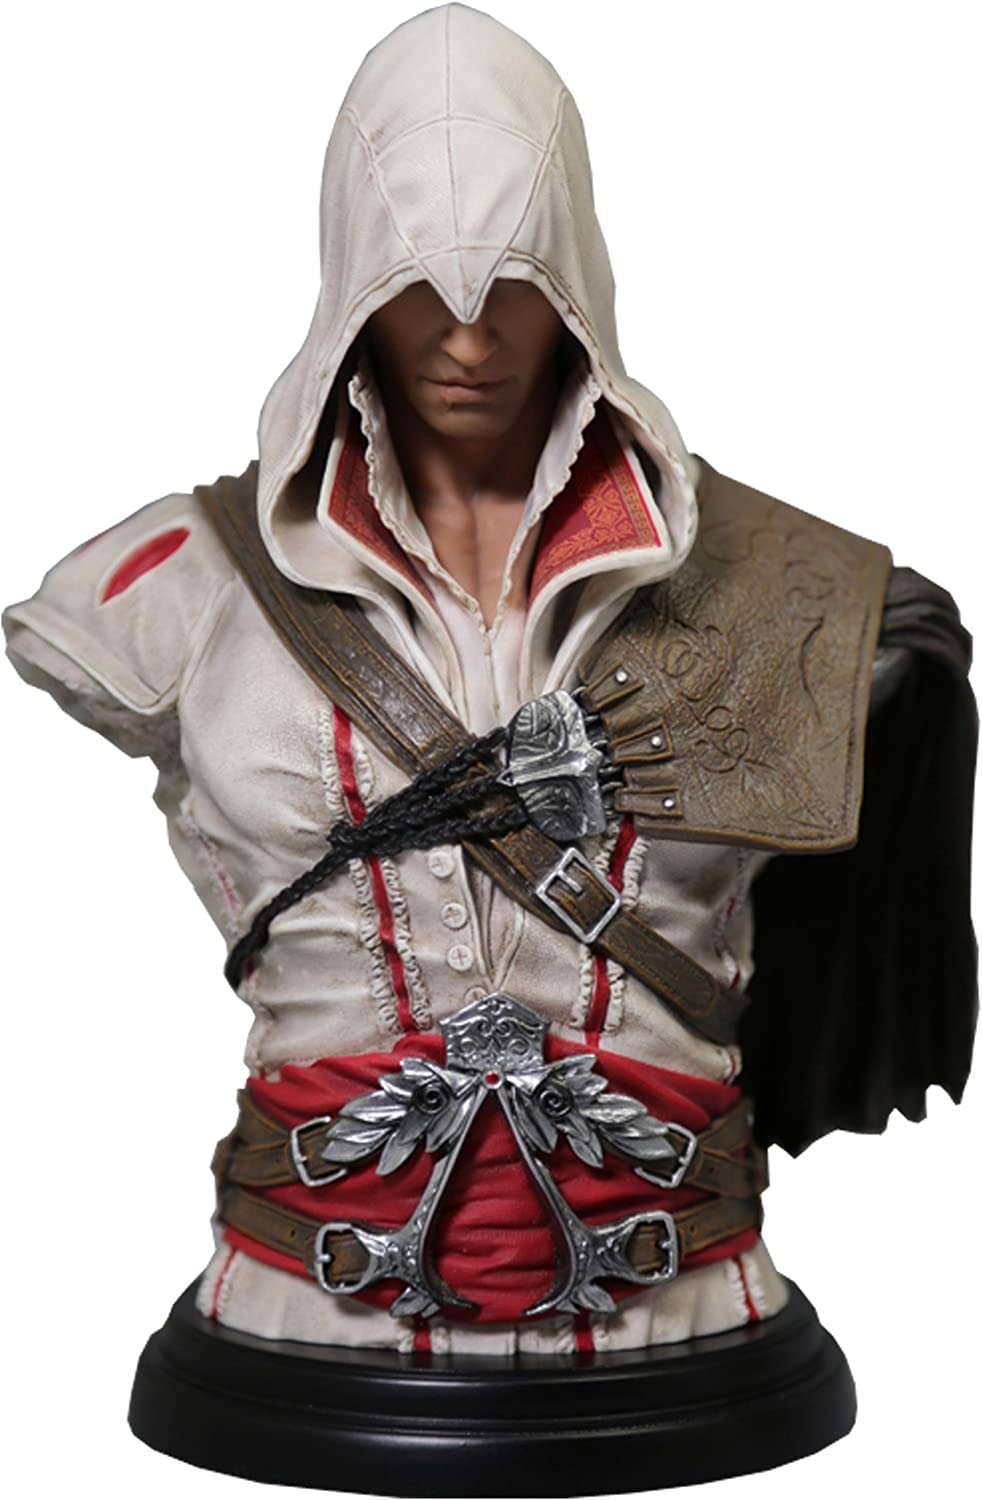 Ezio Auditore Assassin S Creed Character Bust Amazon Co Uk